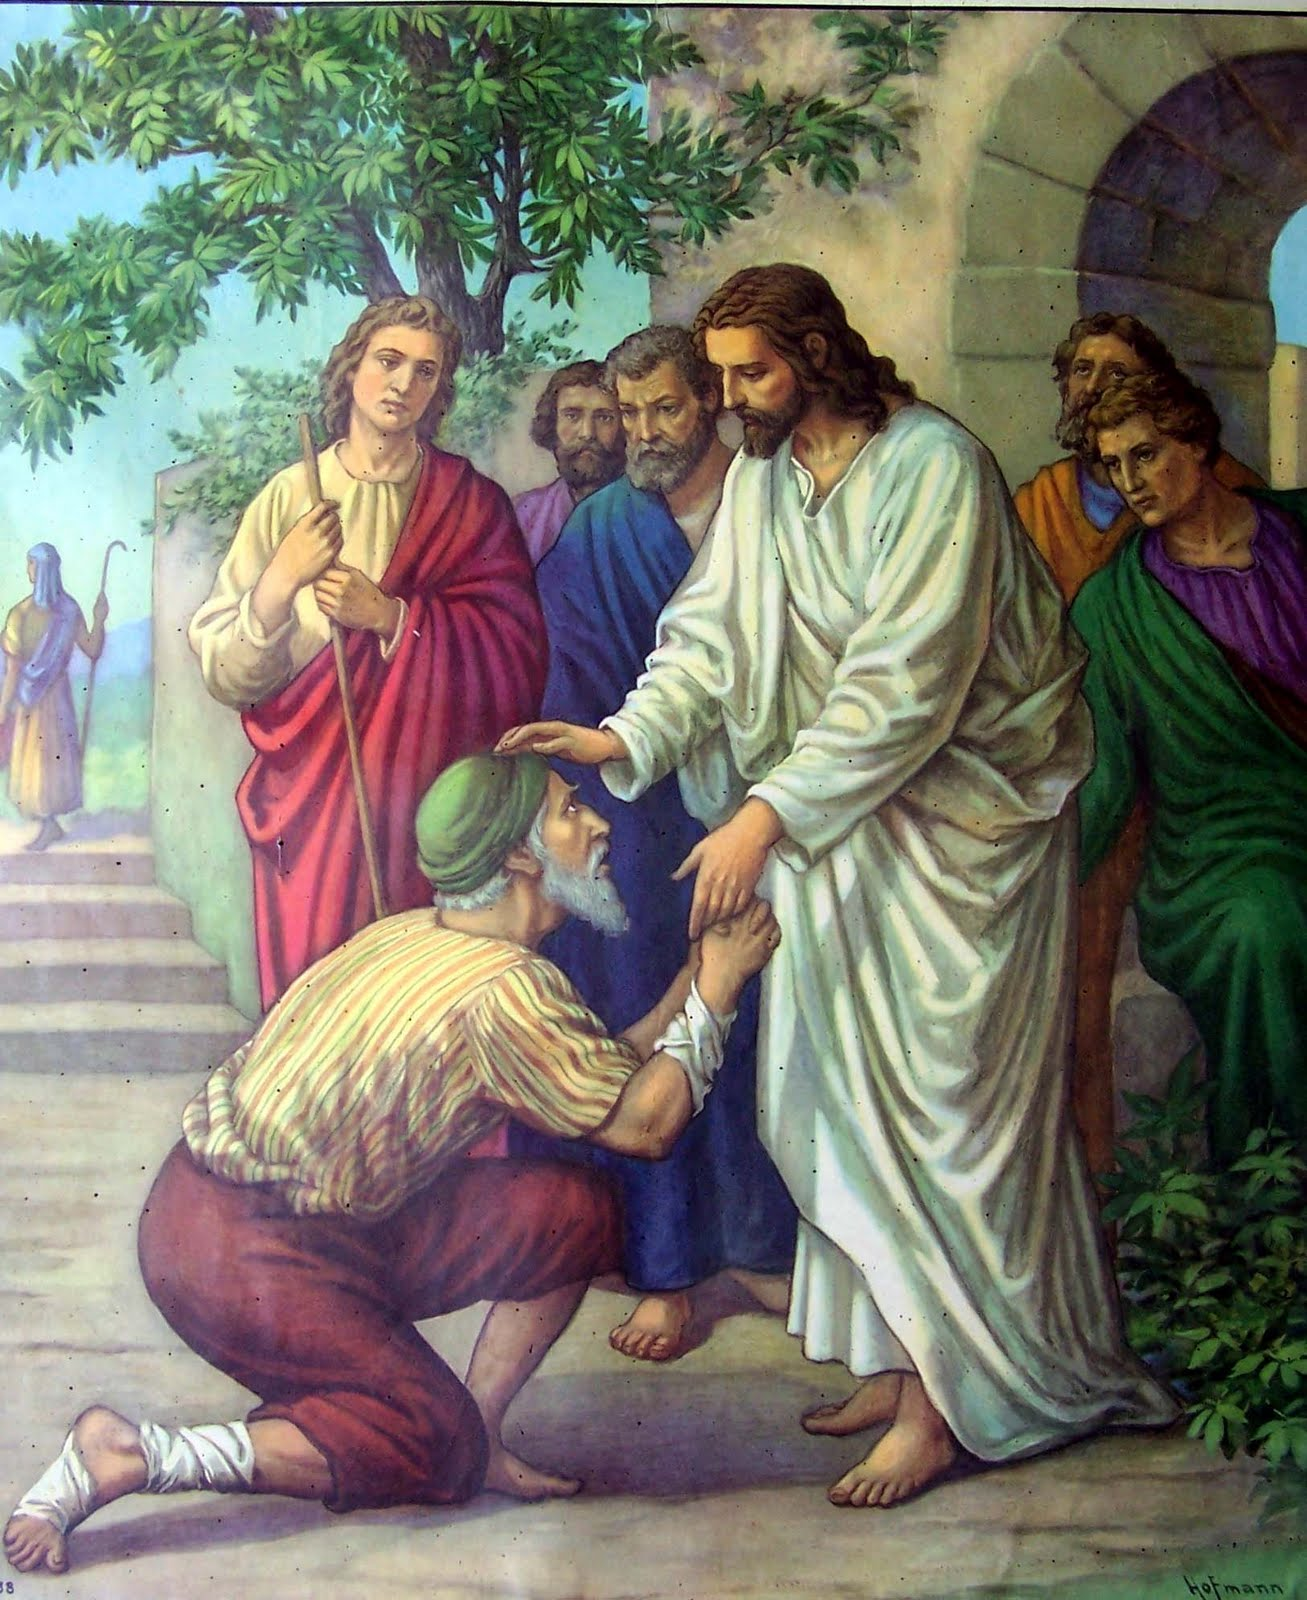 Jesus healing the leper